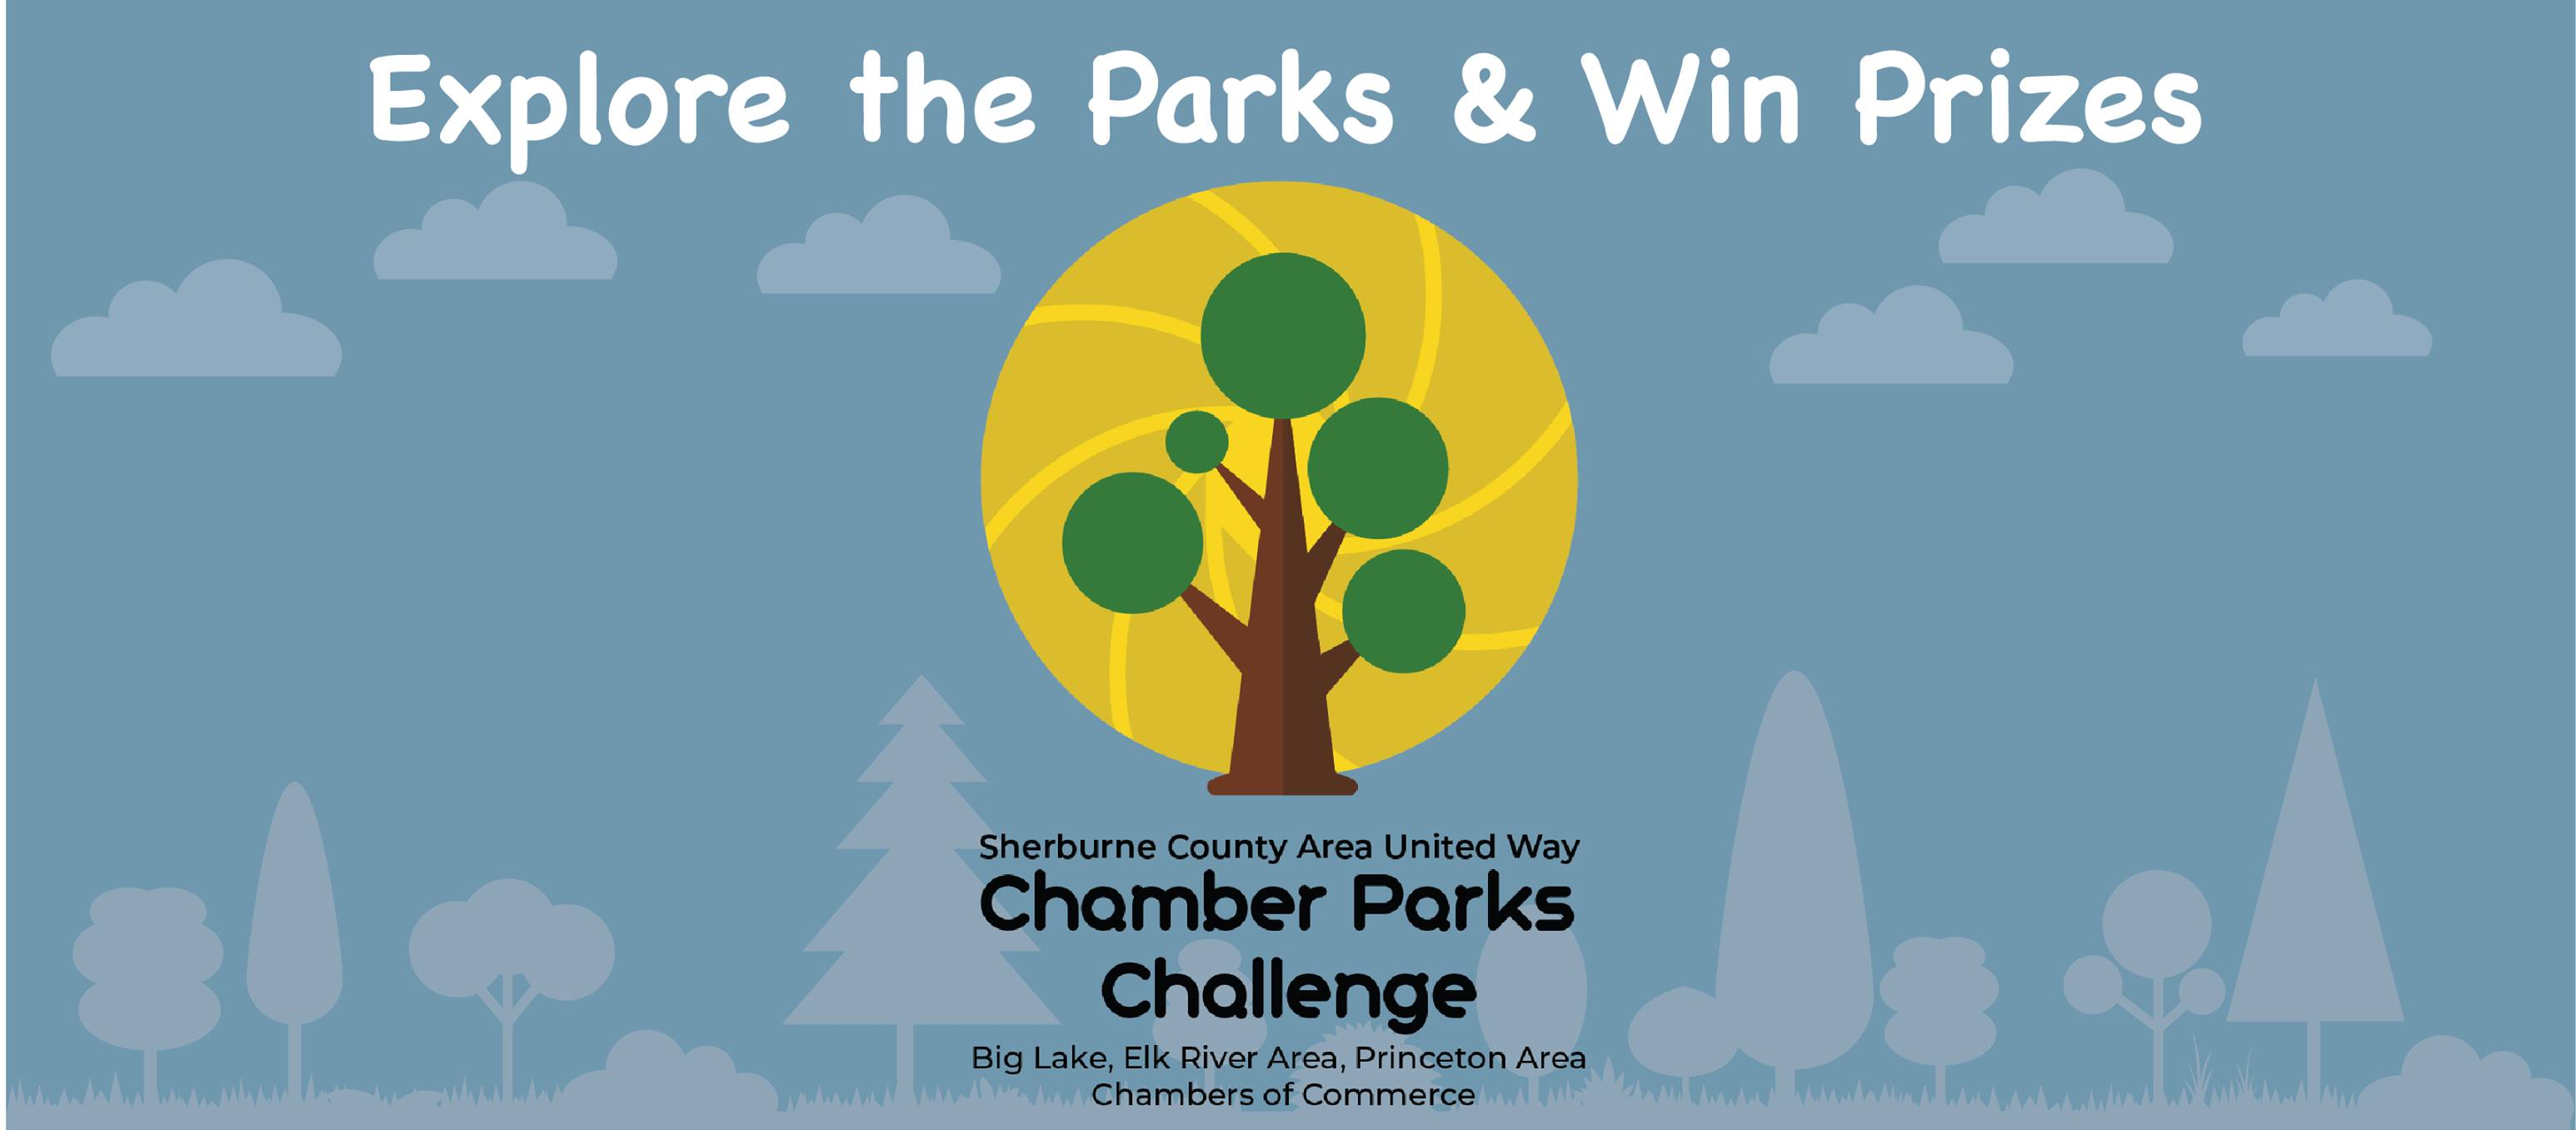 Chamber Parks Challenge